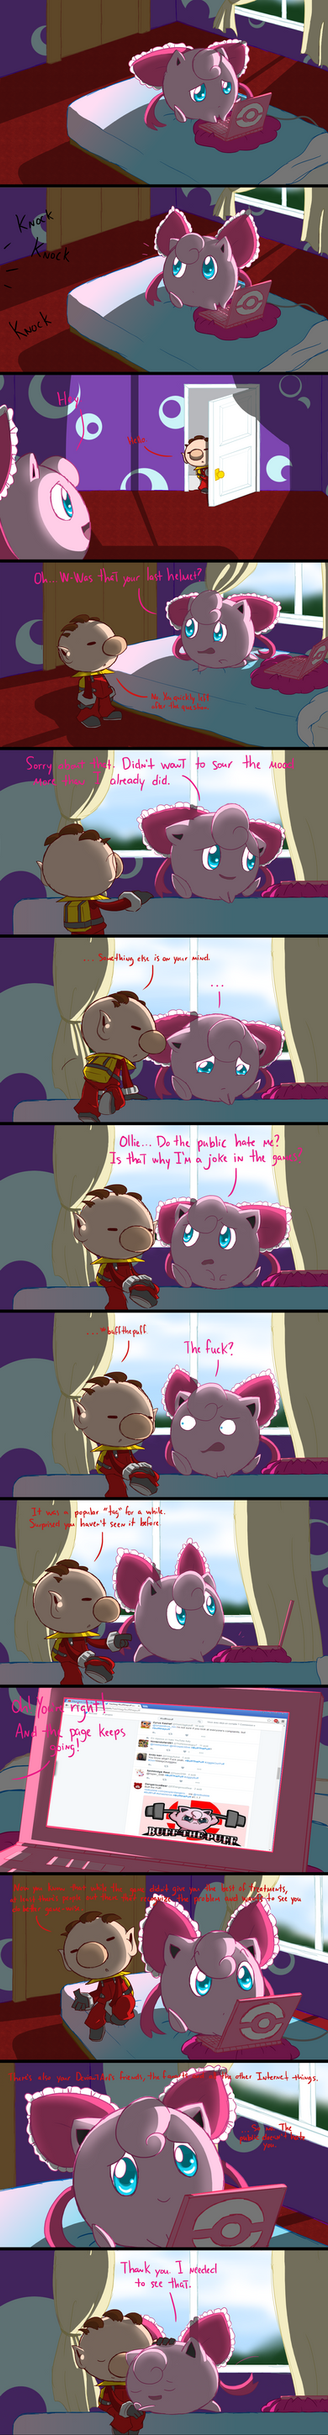 Question 55 -part 2- (LORE) by Oddballs-Of-Smash